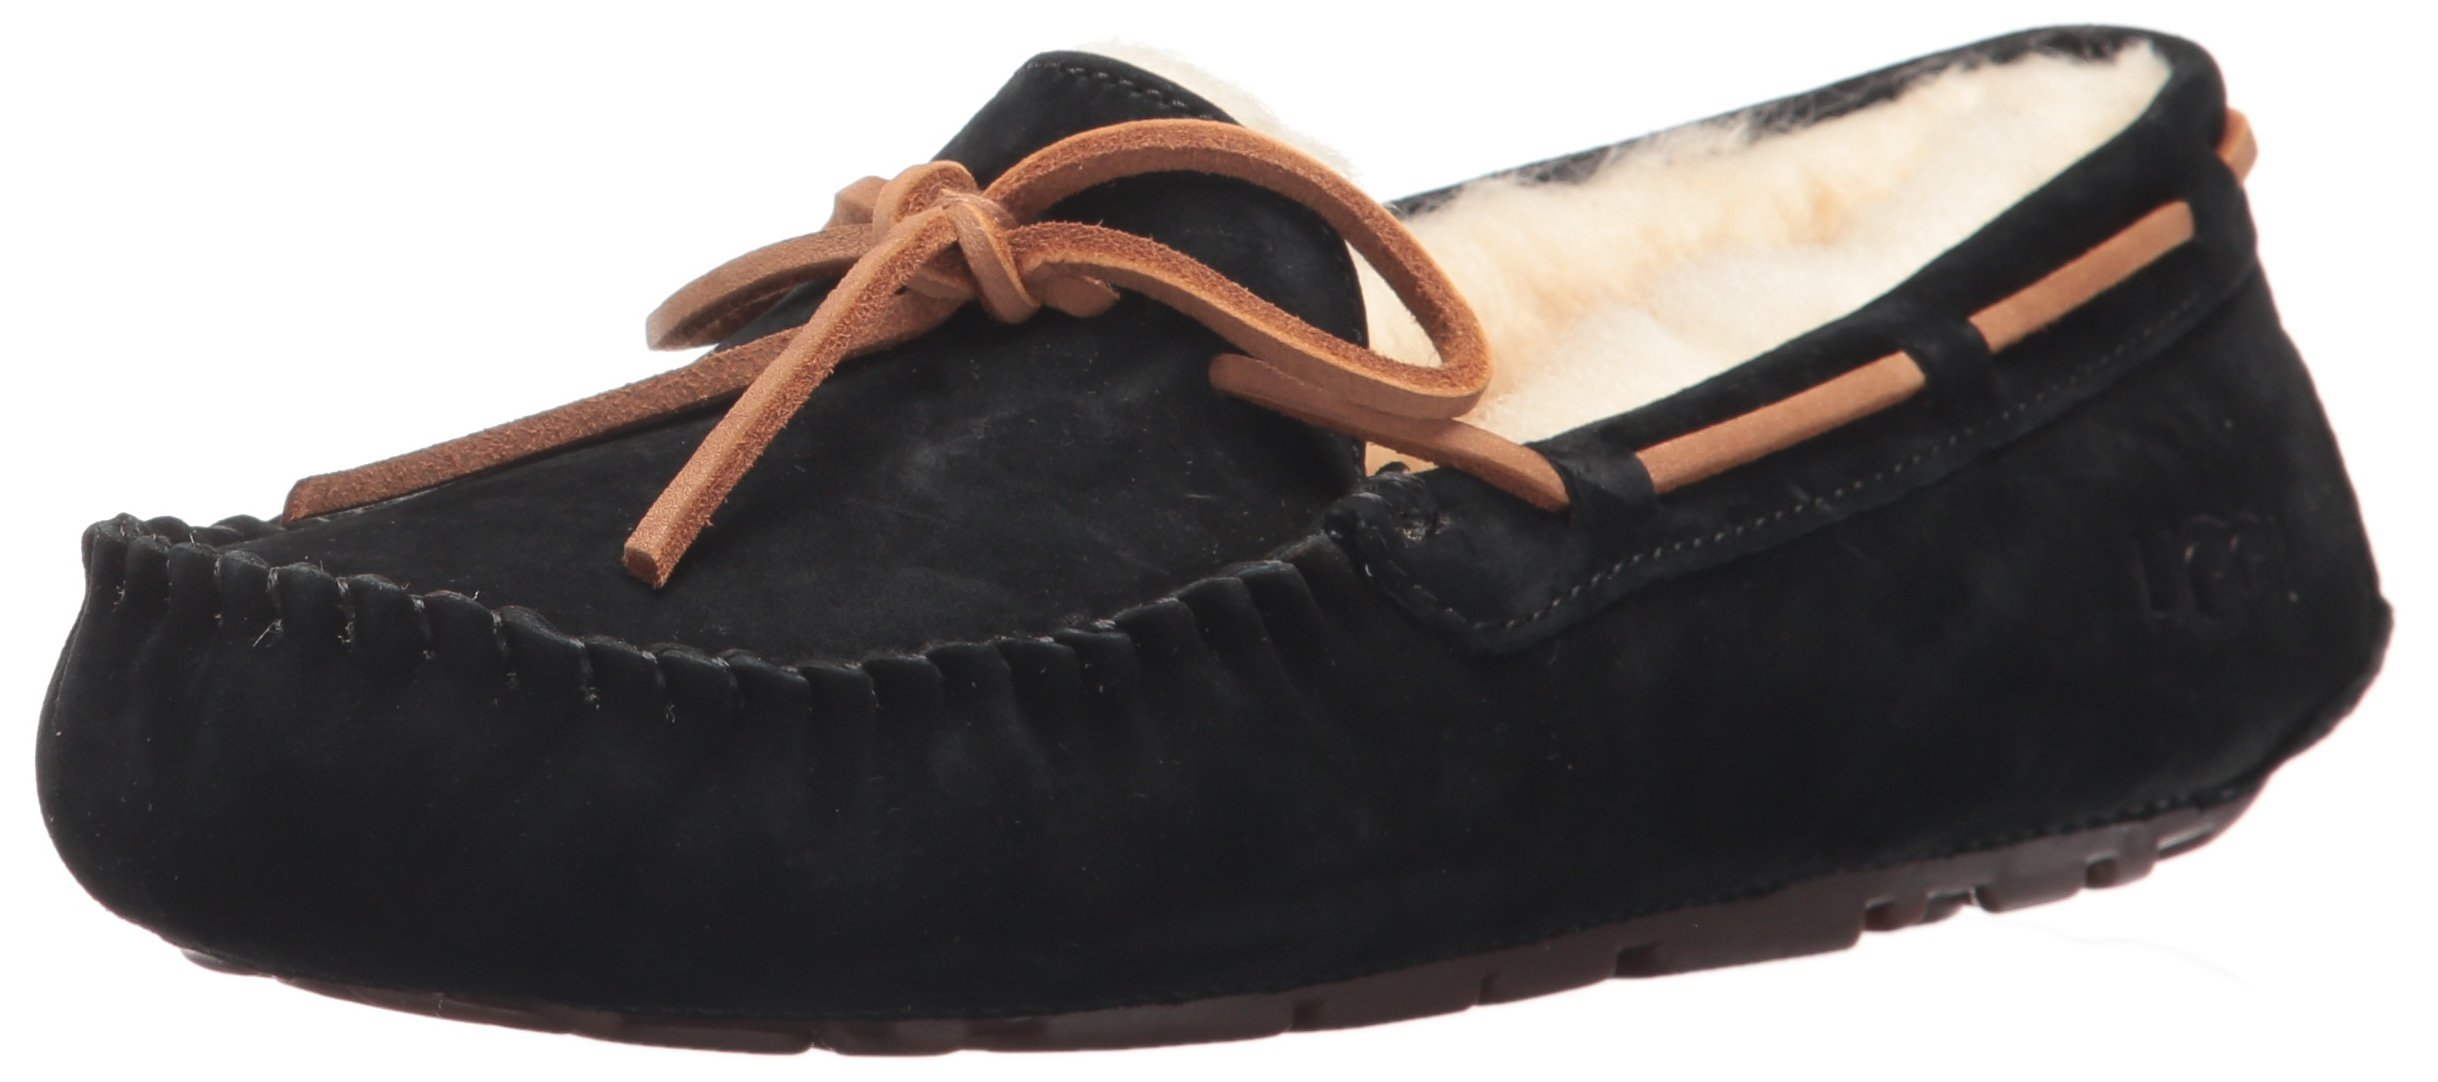 UGG Dakota Slipper - Women's Black, 10.0